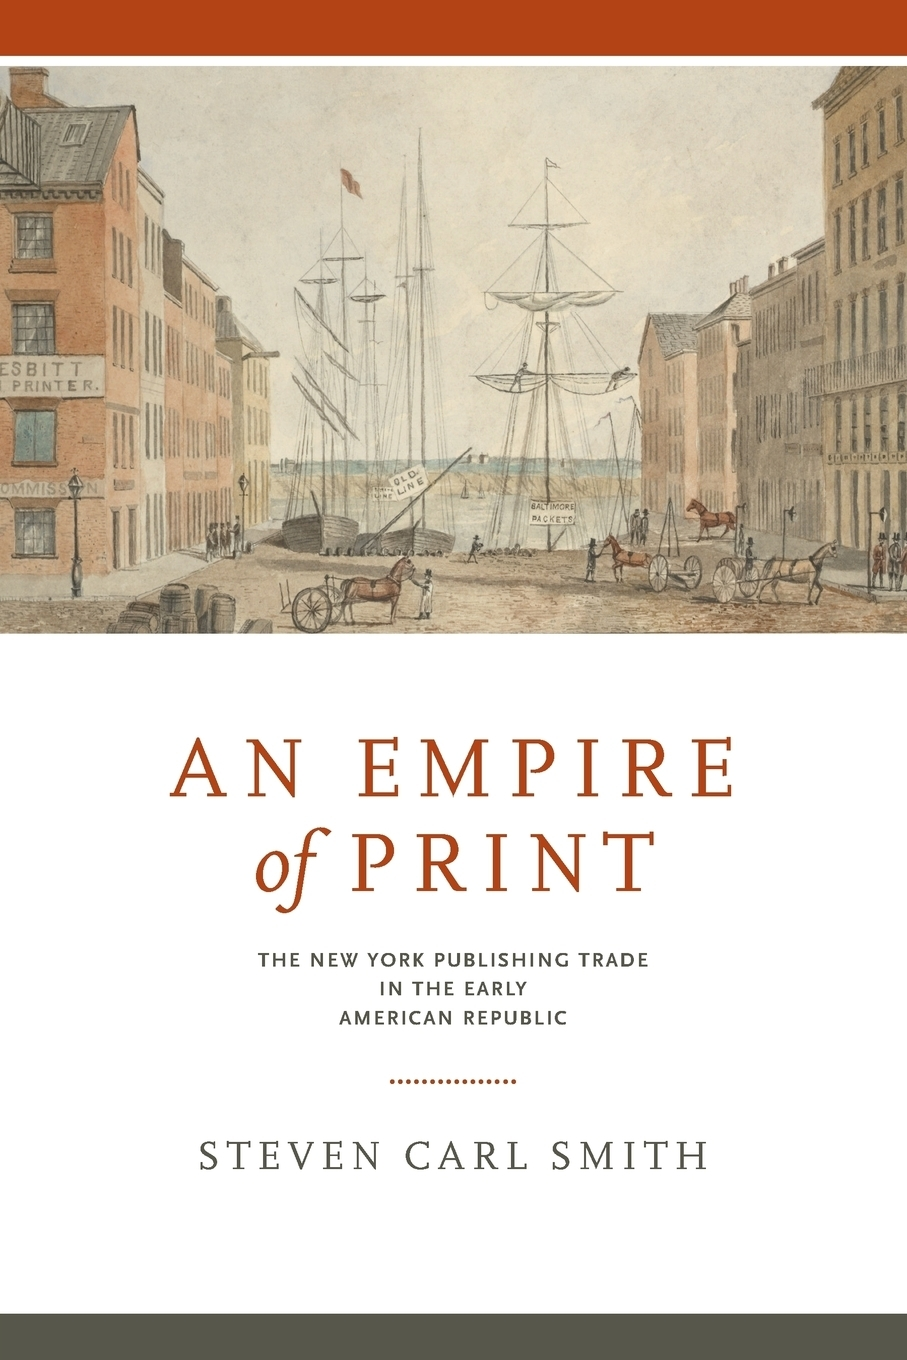 Steven Carl Smith. An Empire of Print. The New York Publishing Trade in the Early American Republic